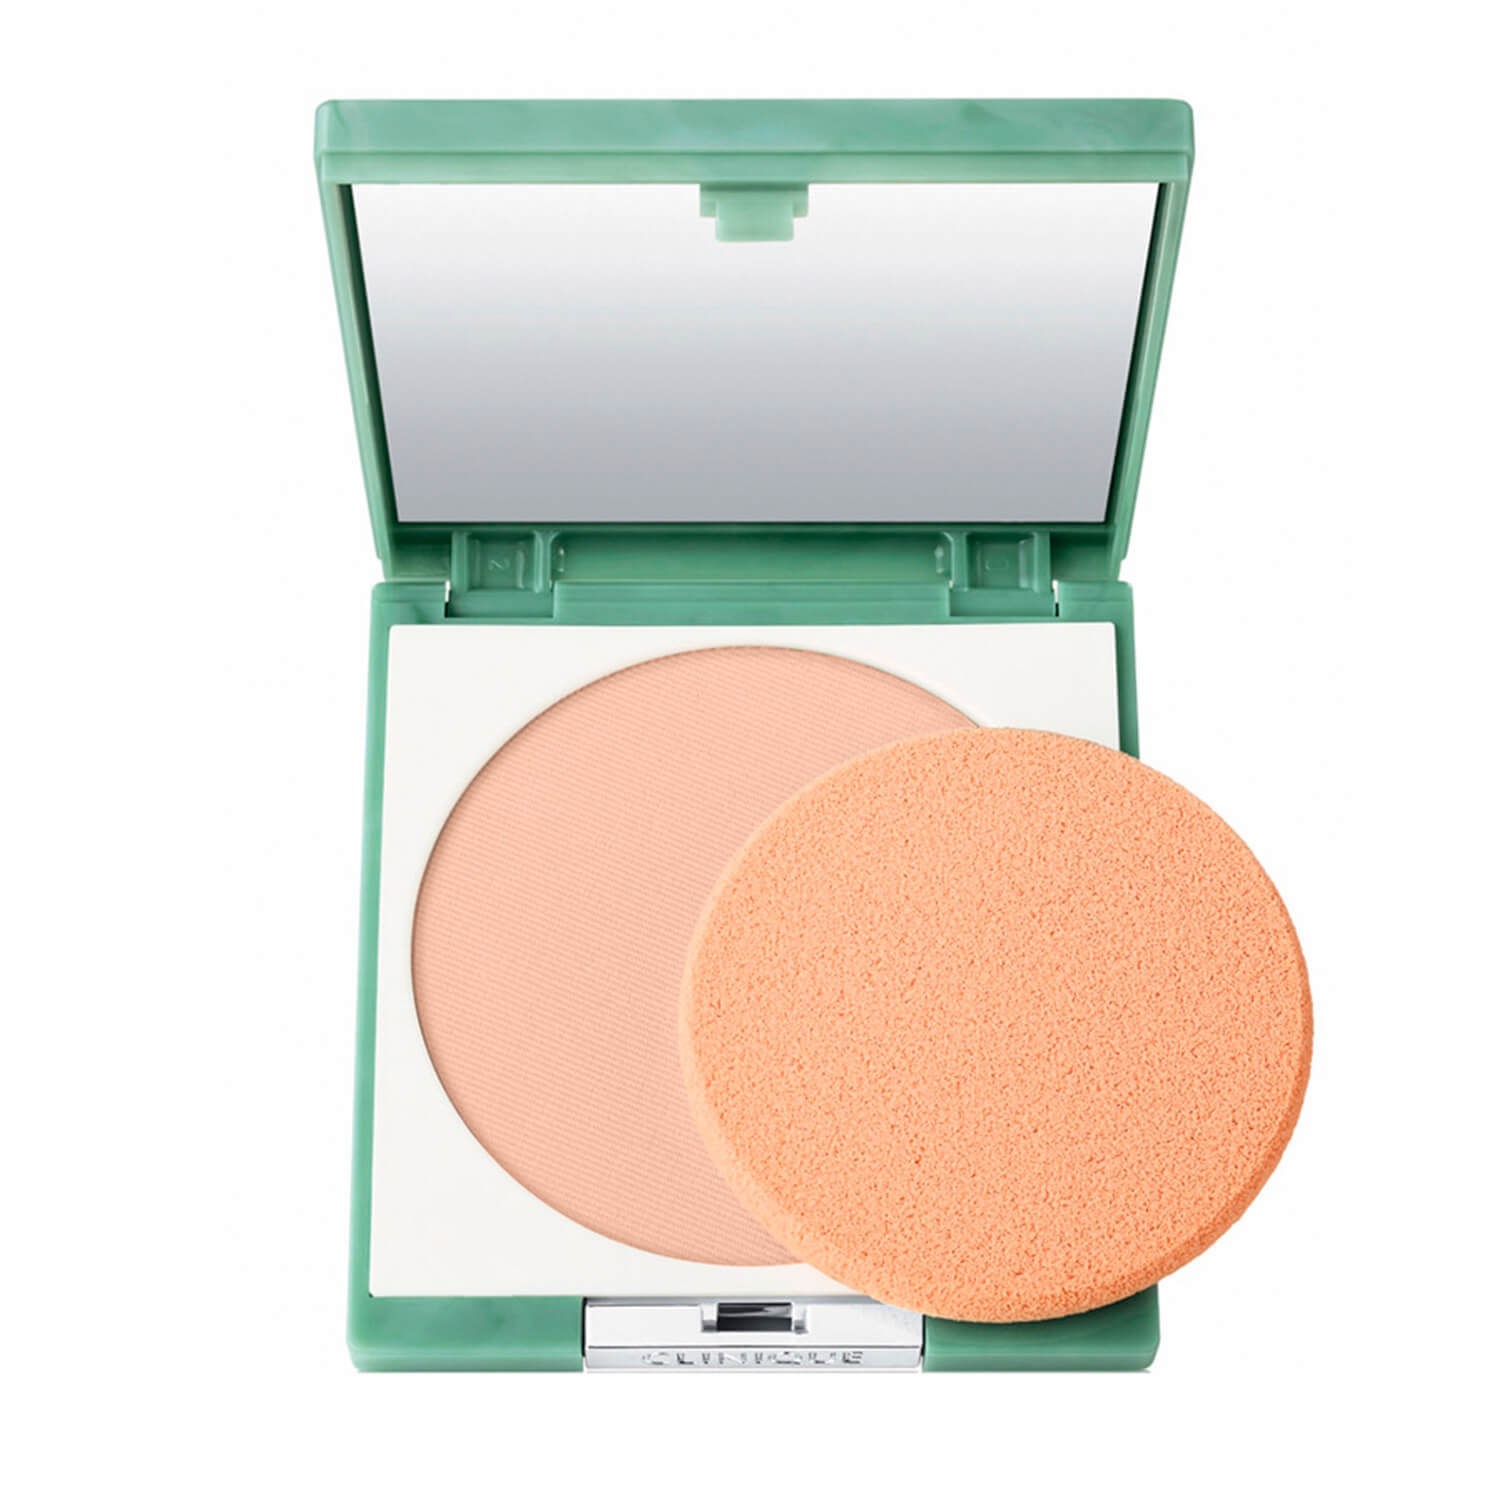 Superpowder - Double Face Matte 02 Beige